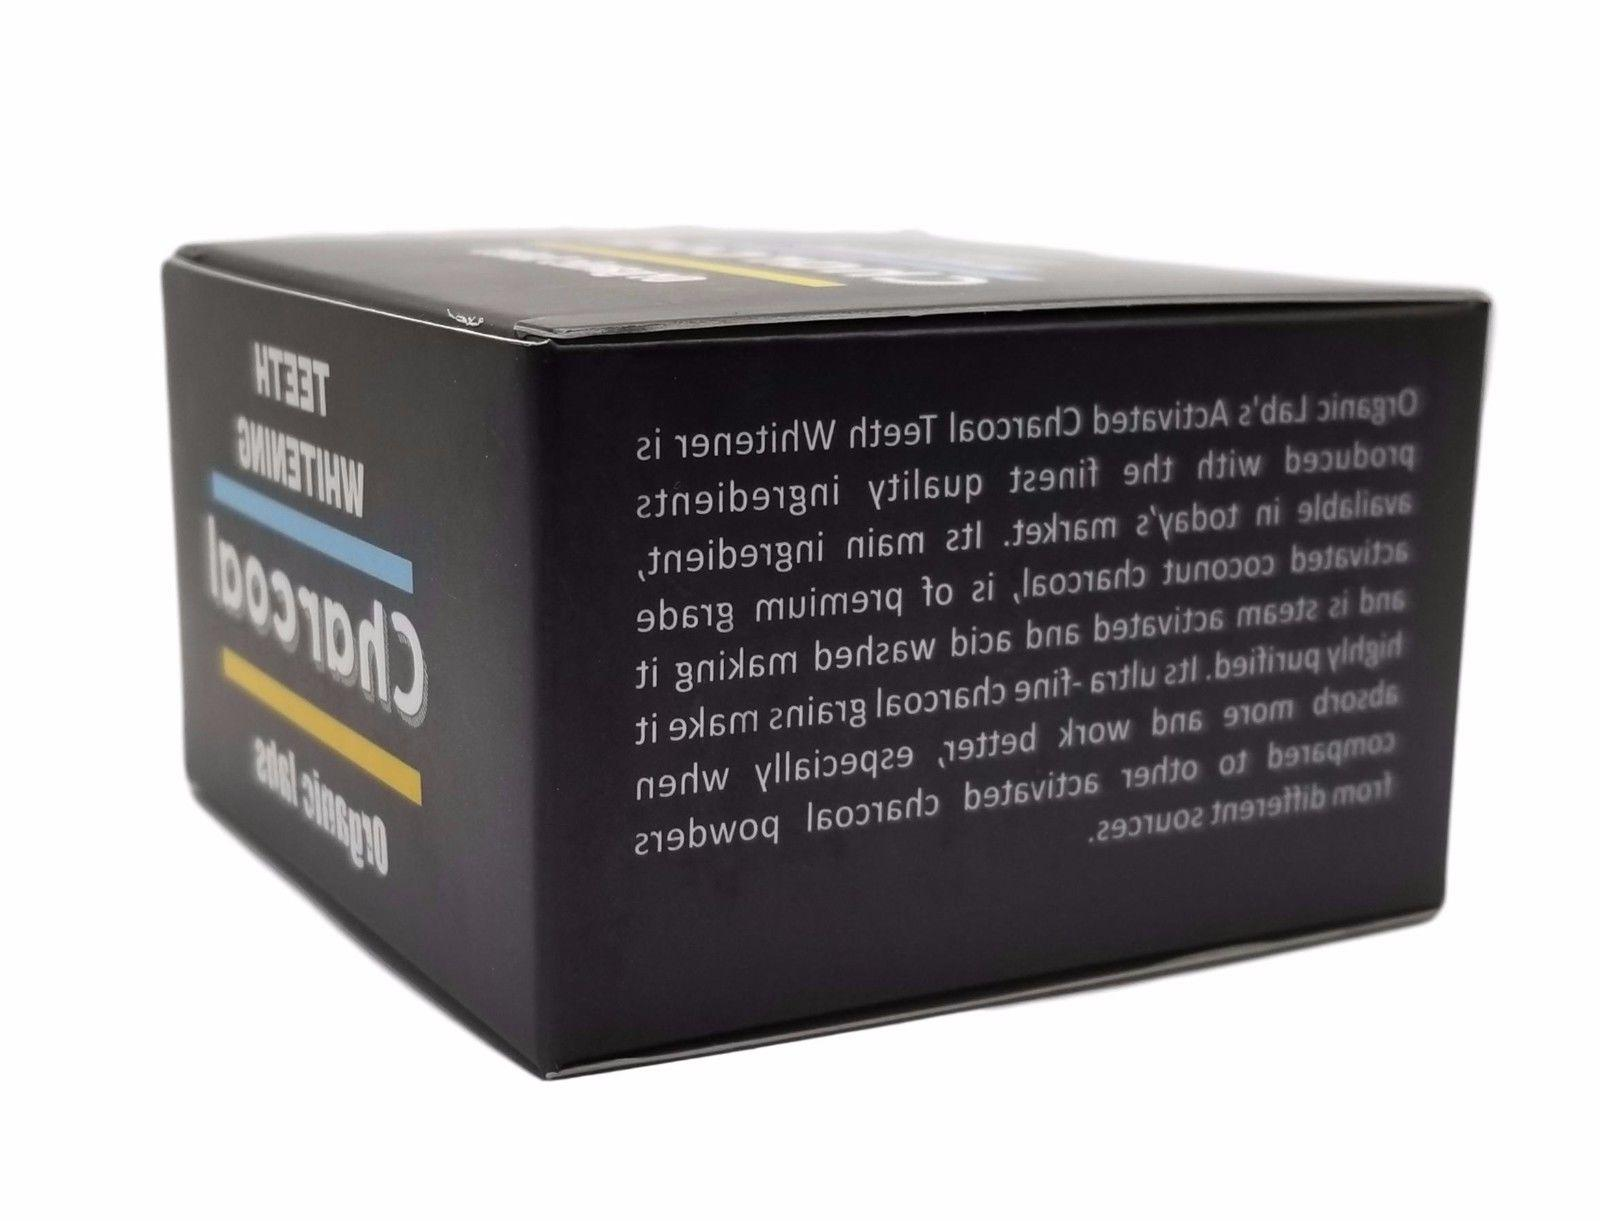 ACTIVATED TEETH CHARCOAL TOOTHPASTE POWDER FOOD GRADE